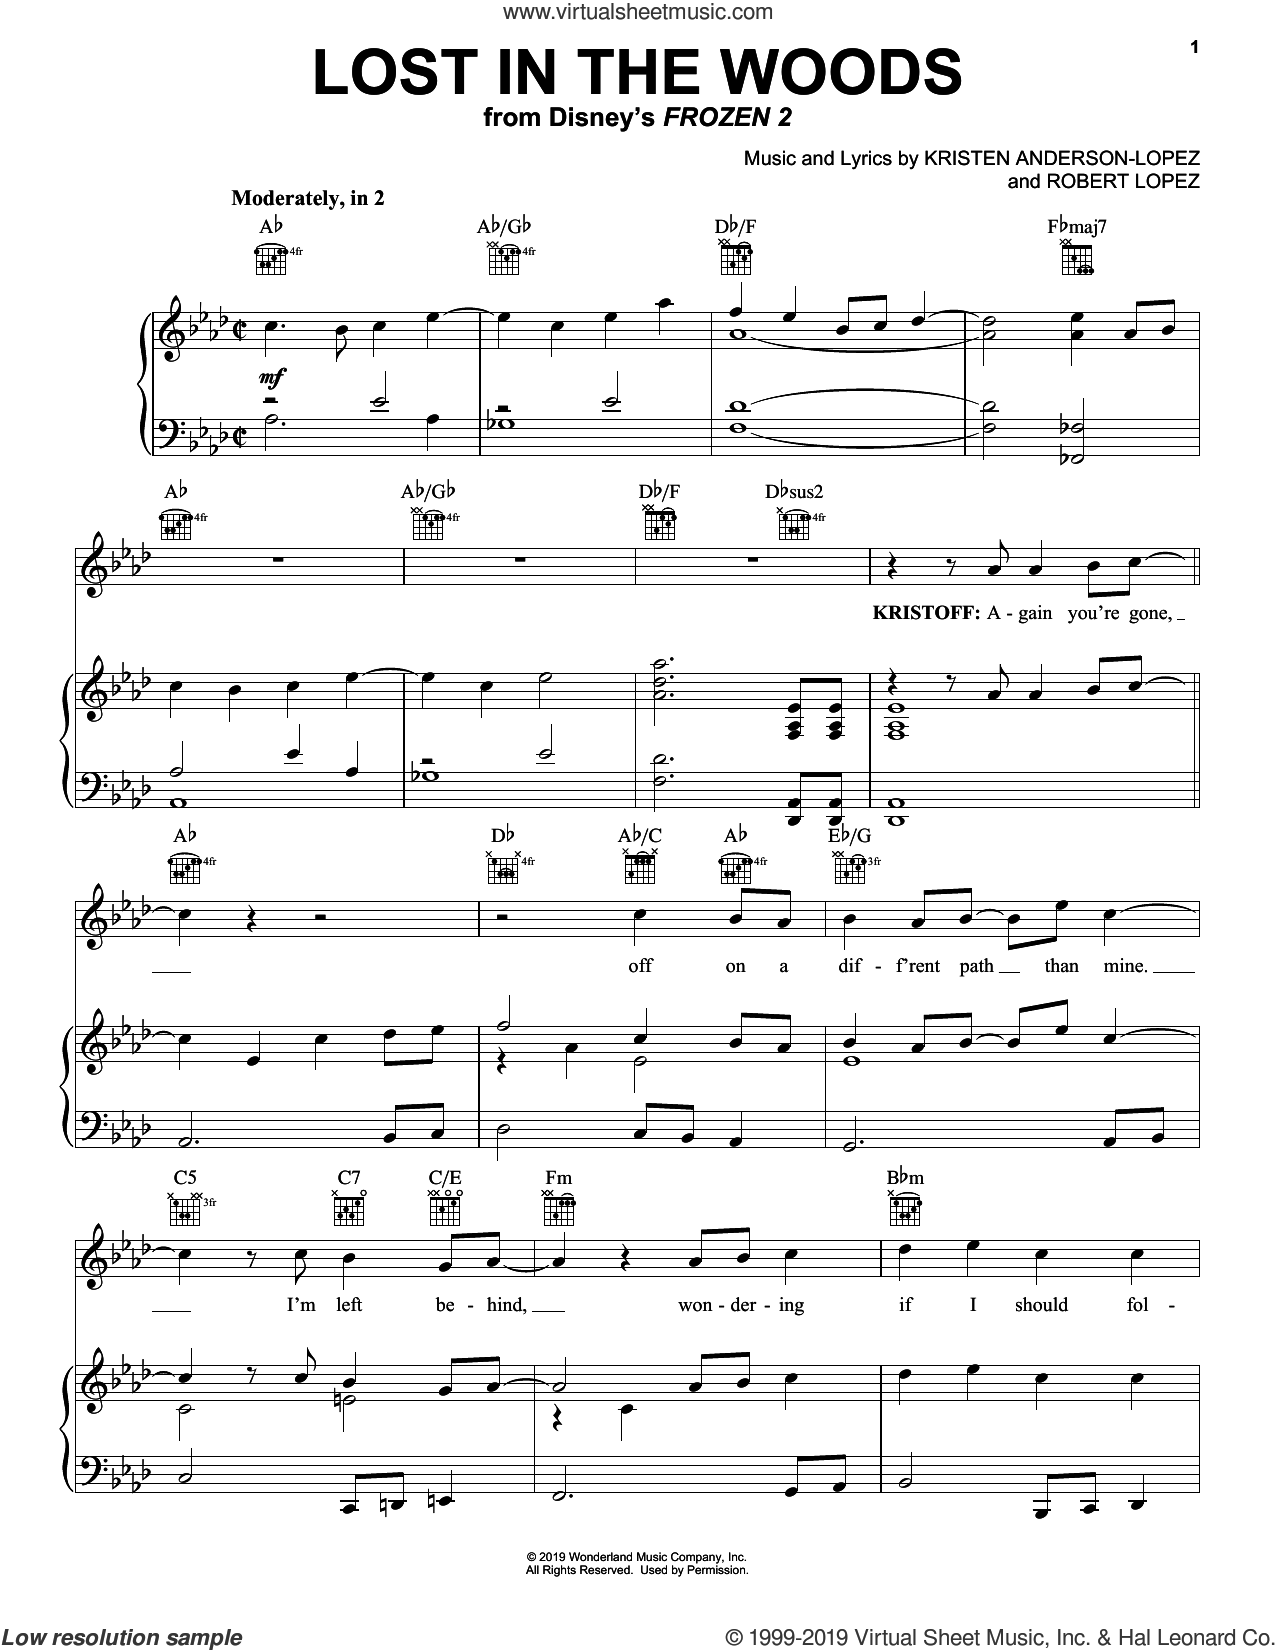 Lost In The Woods (from Disney's Frozen 2) sheet music for voice, piano or guitar by Jonathan Groff, Kristen Anderson-Lopez and Robert Lopez, intermediate skill level